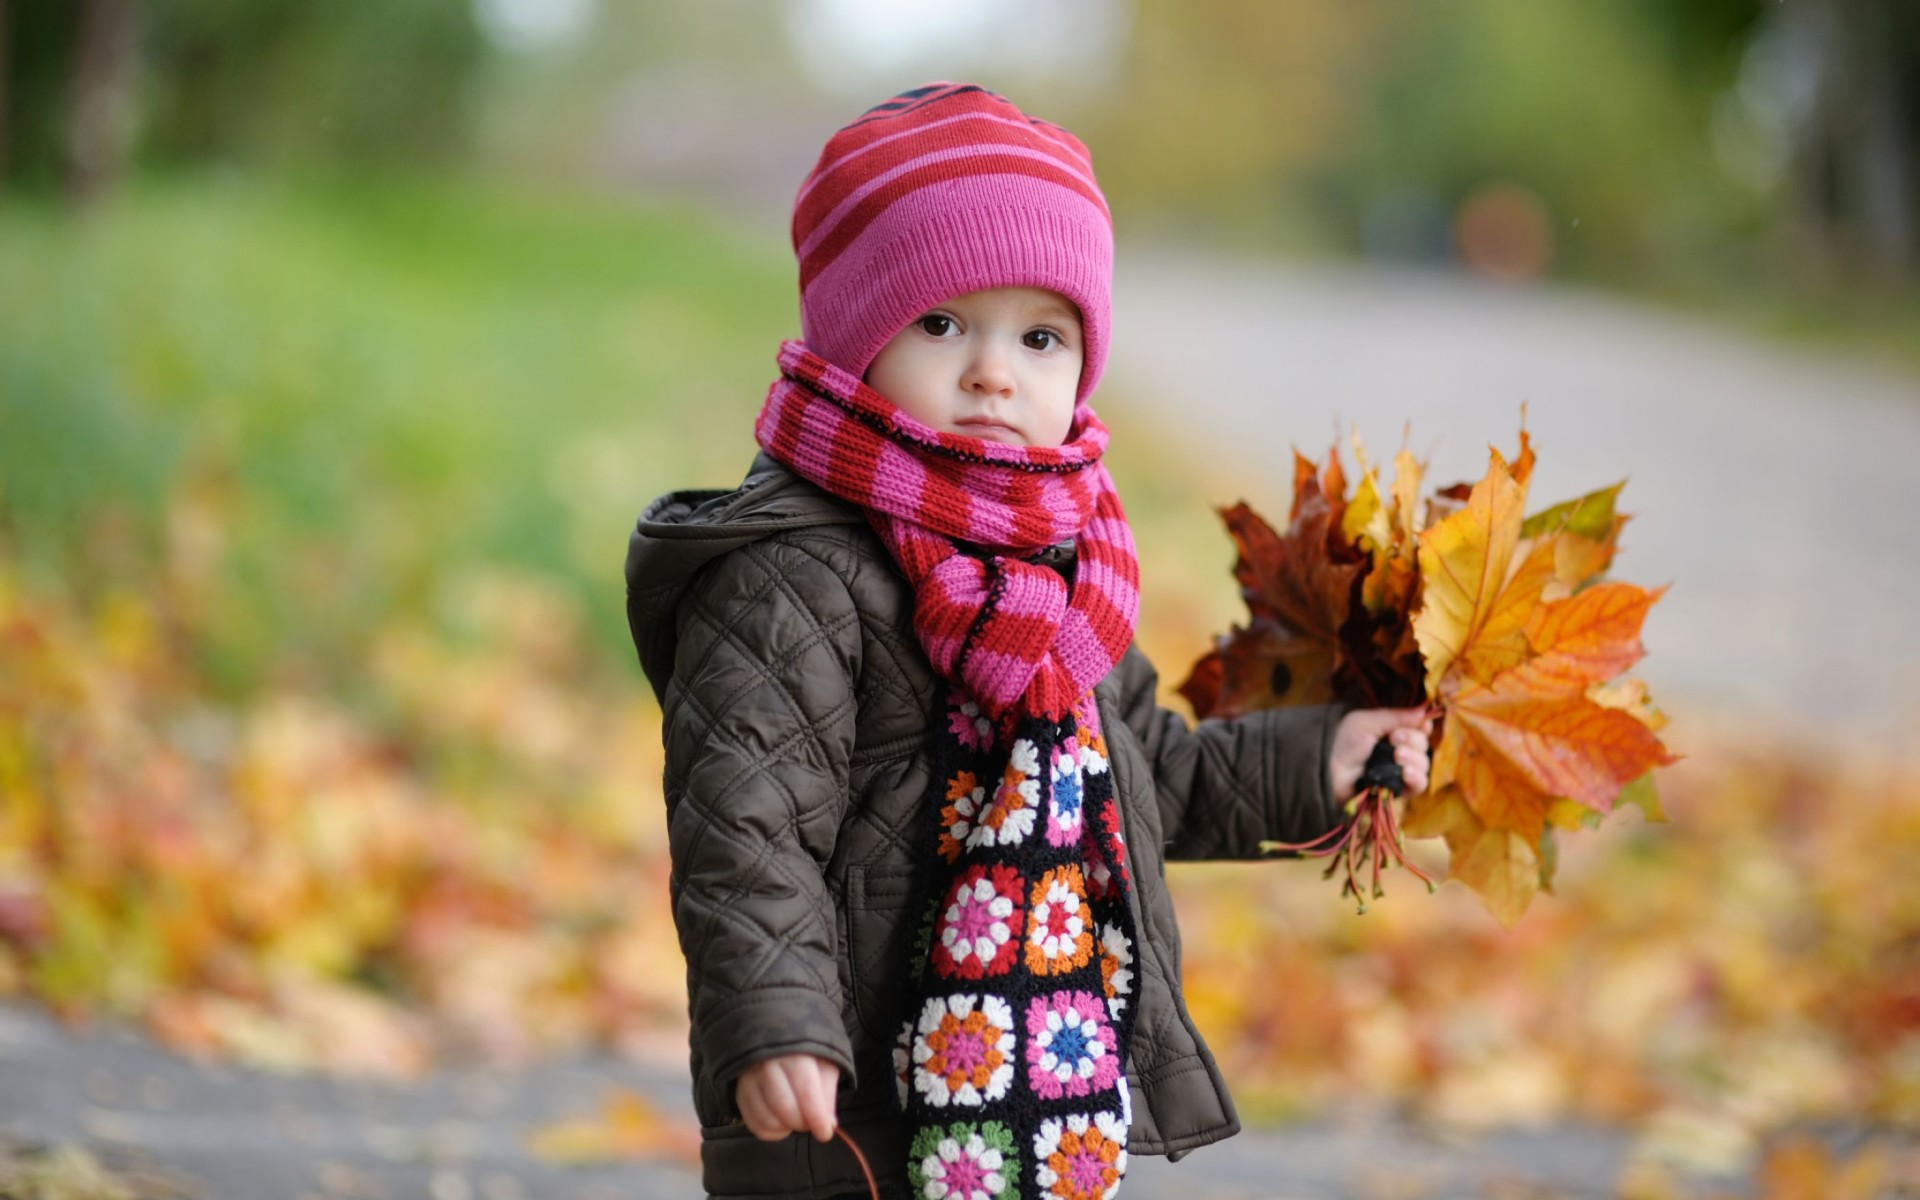 Cute Baby In Autumn Wide Wallpaper